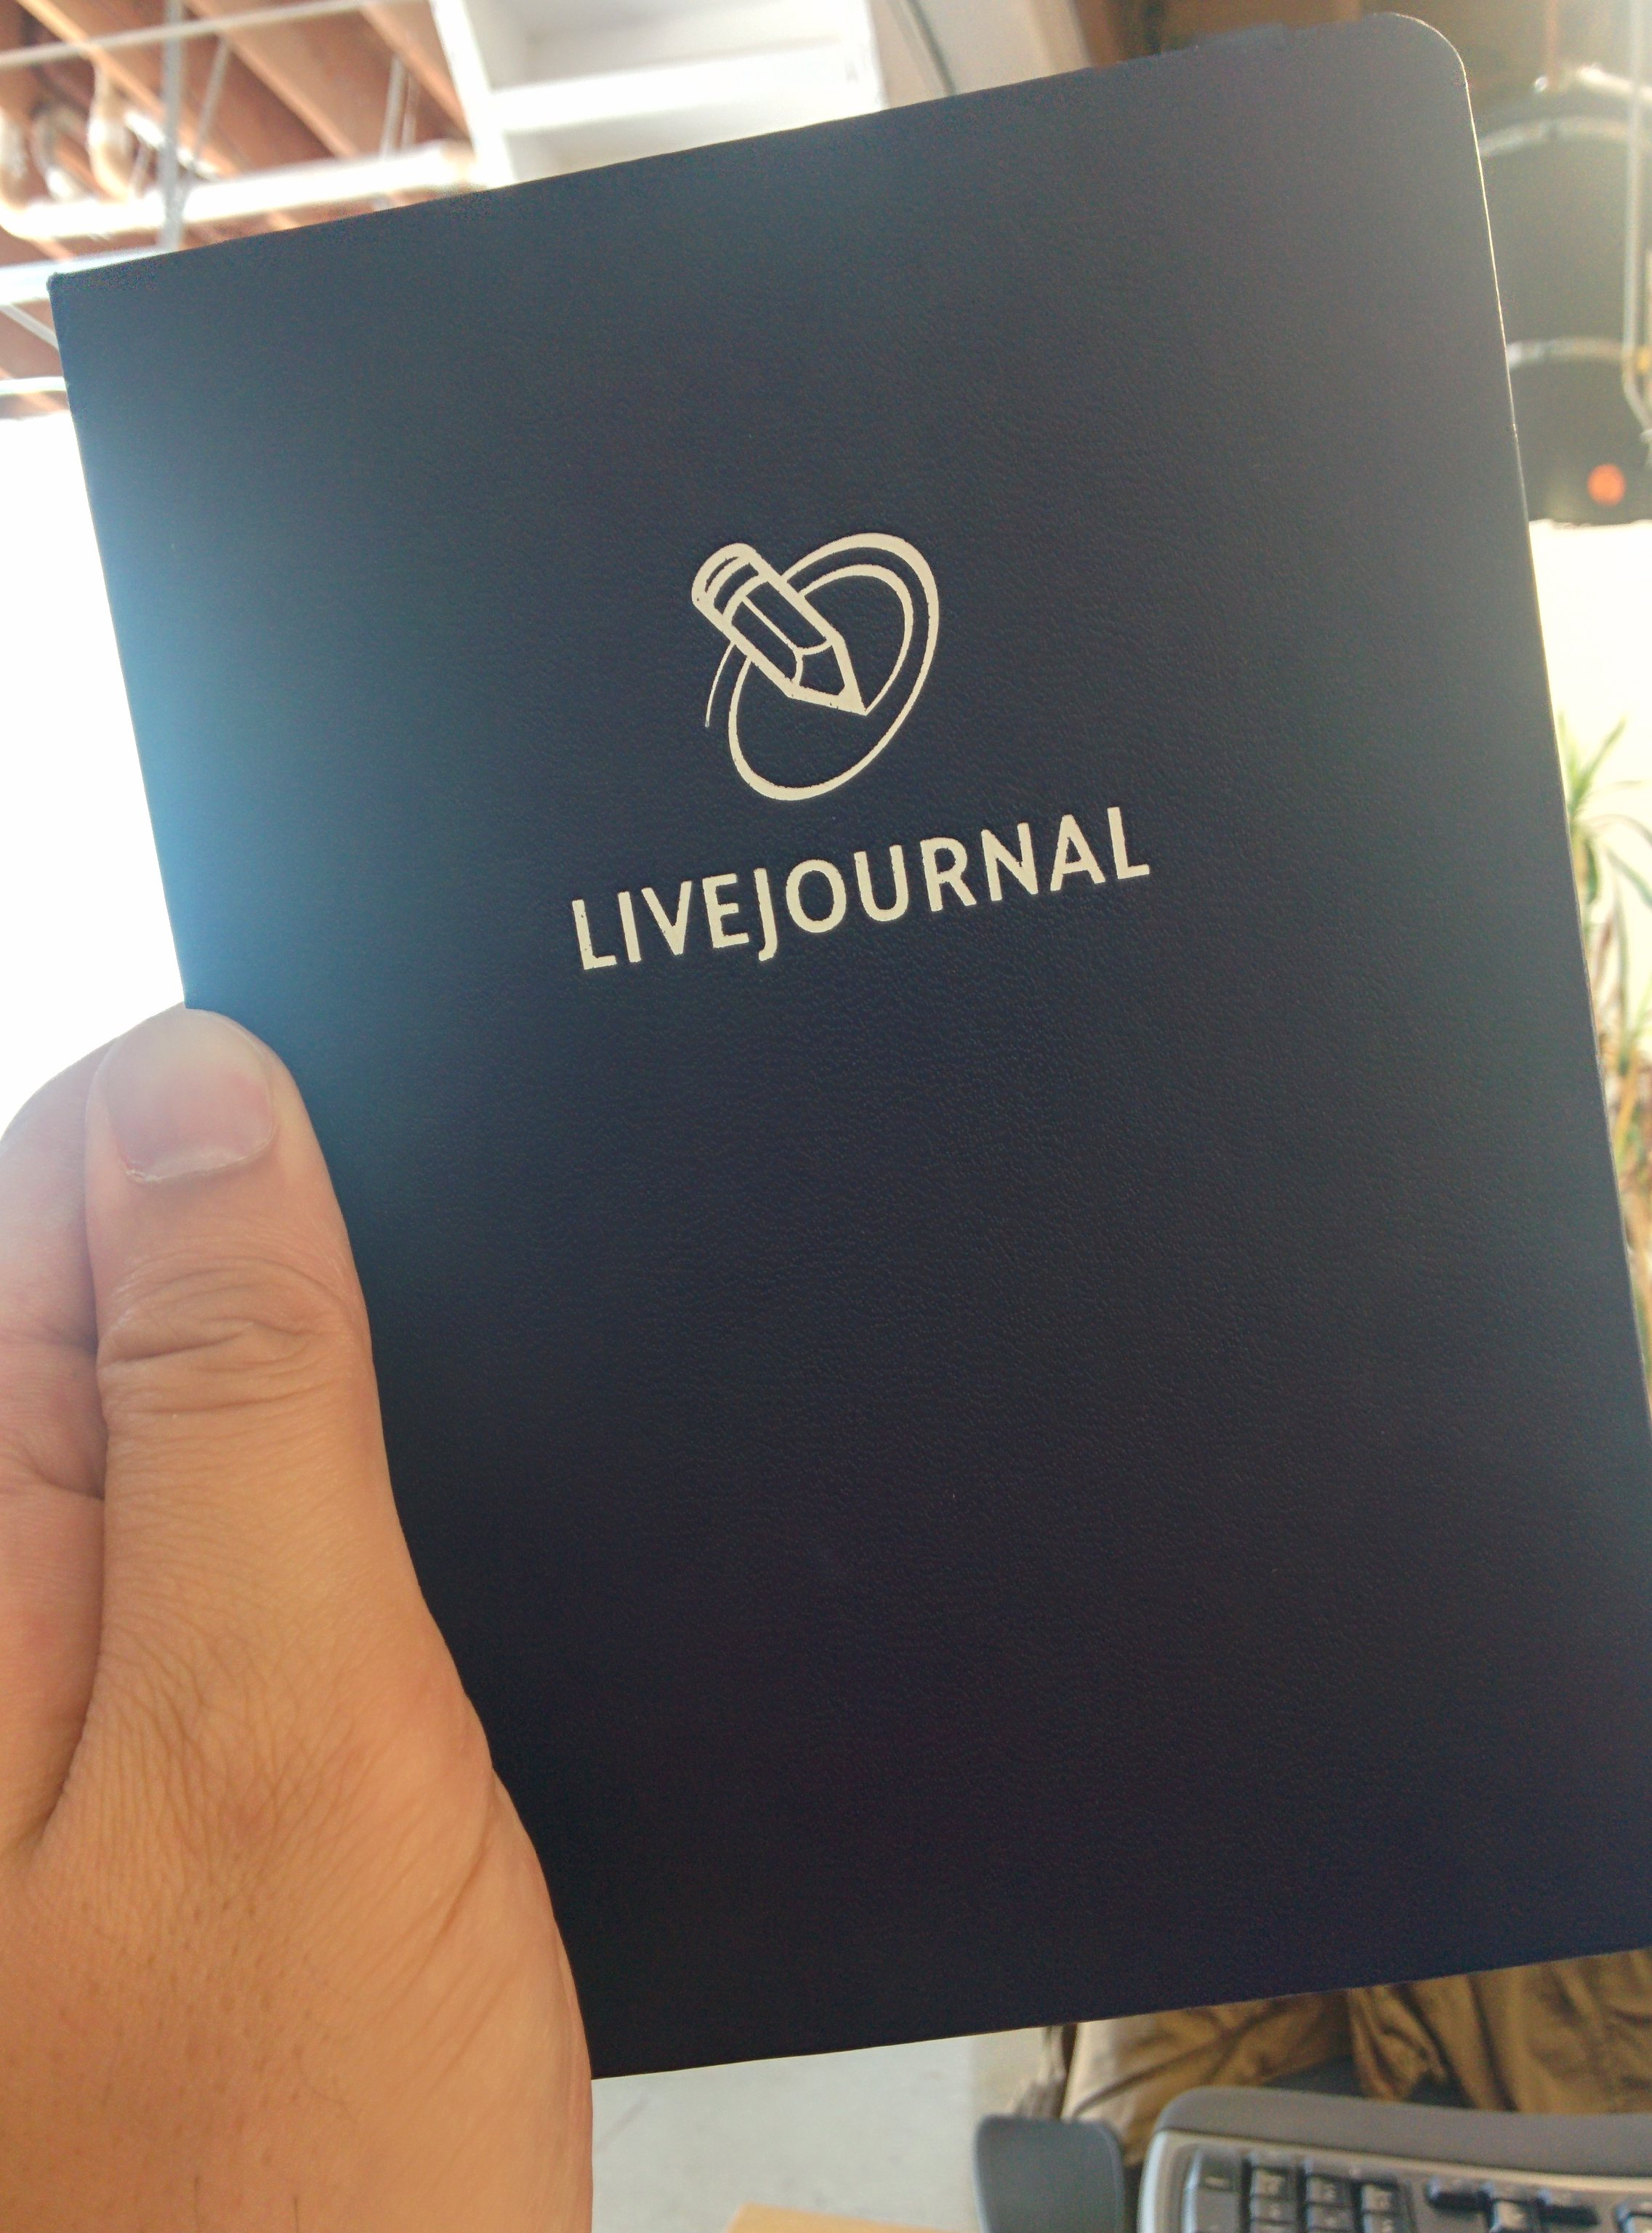 Photo of a LiveJournal branded notepad.